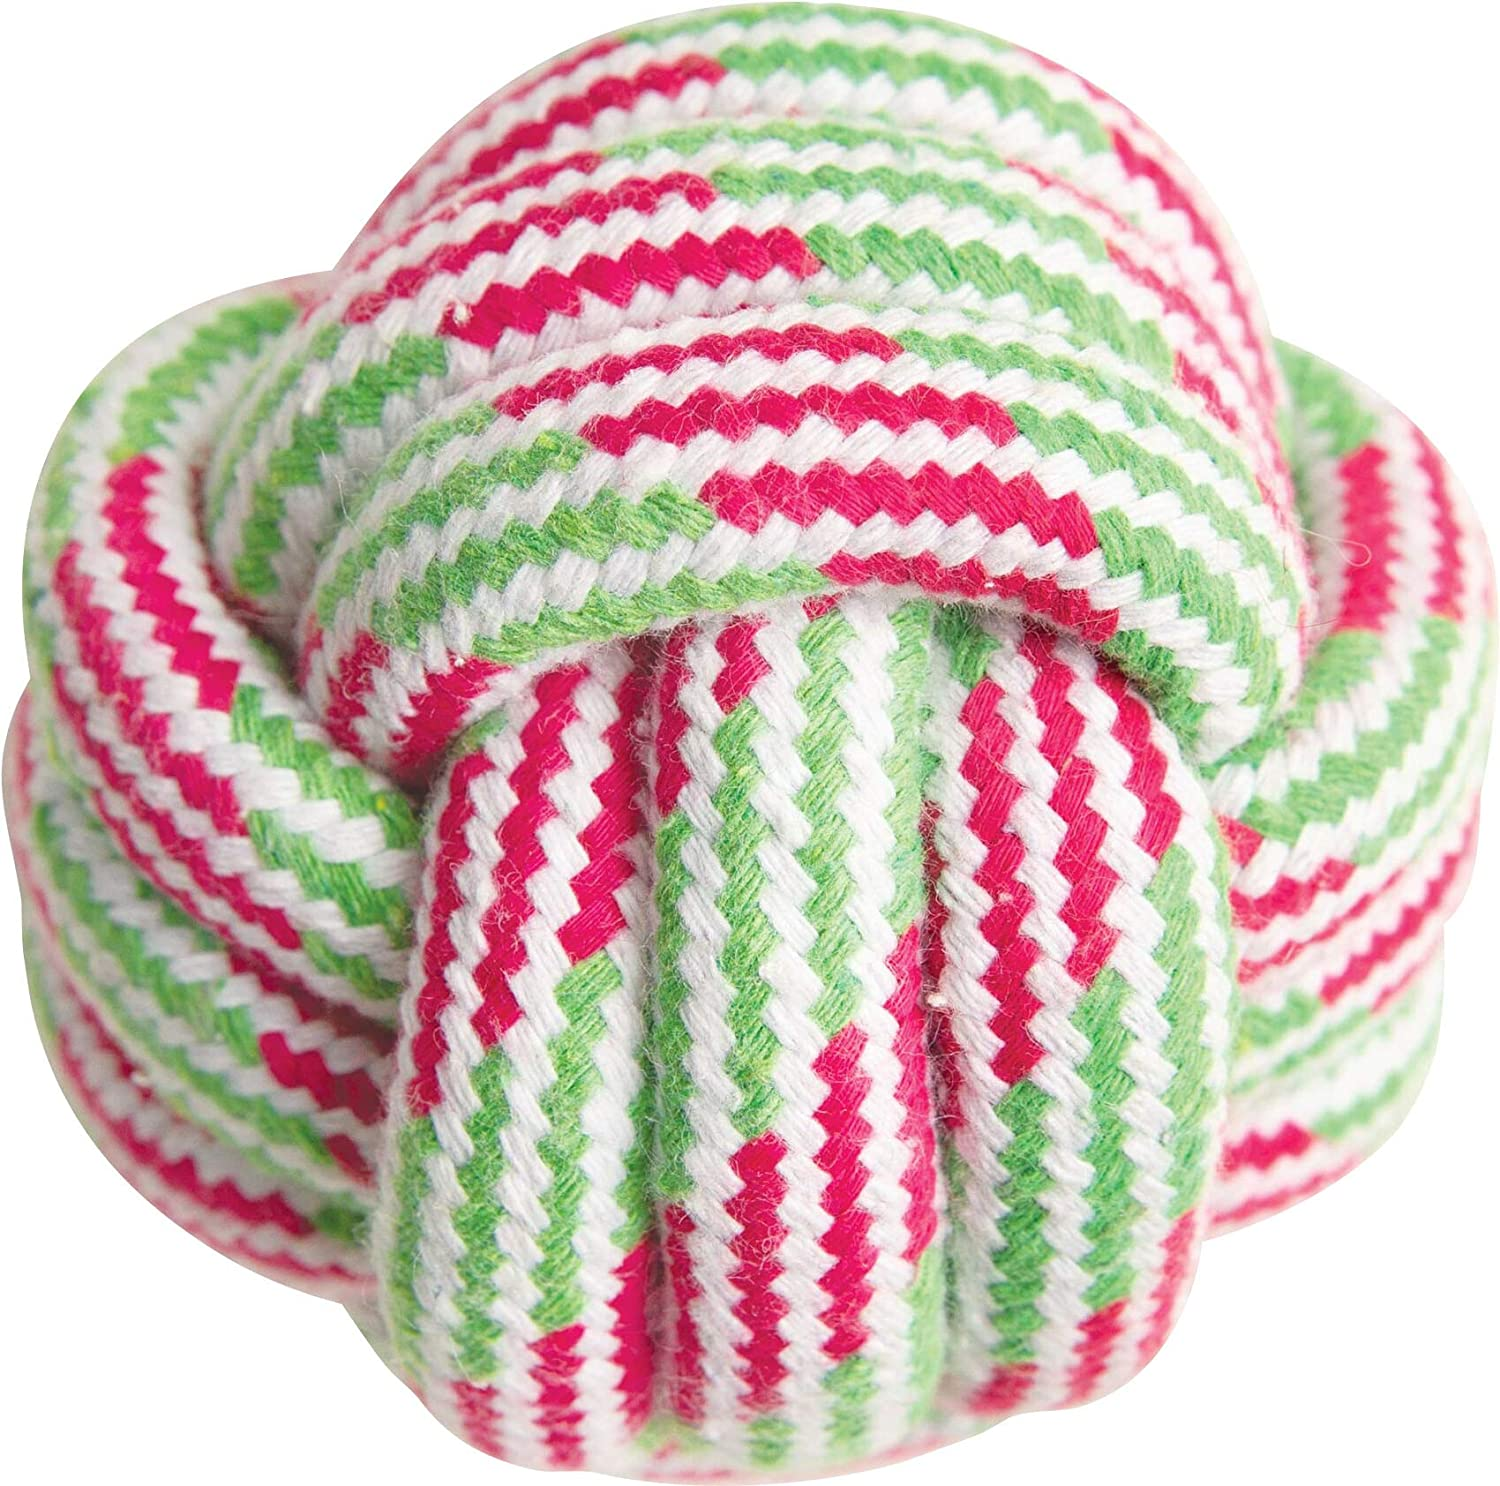 Snugarooz Snugz Knot Your Ball Dog Toy, Assorted Colors, 3.5-in